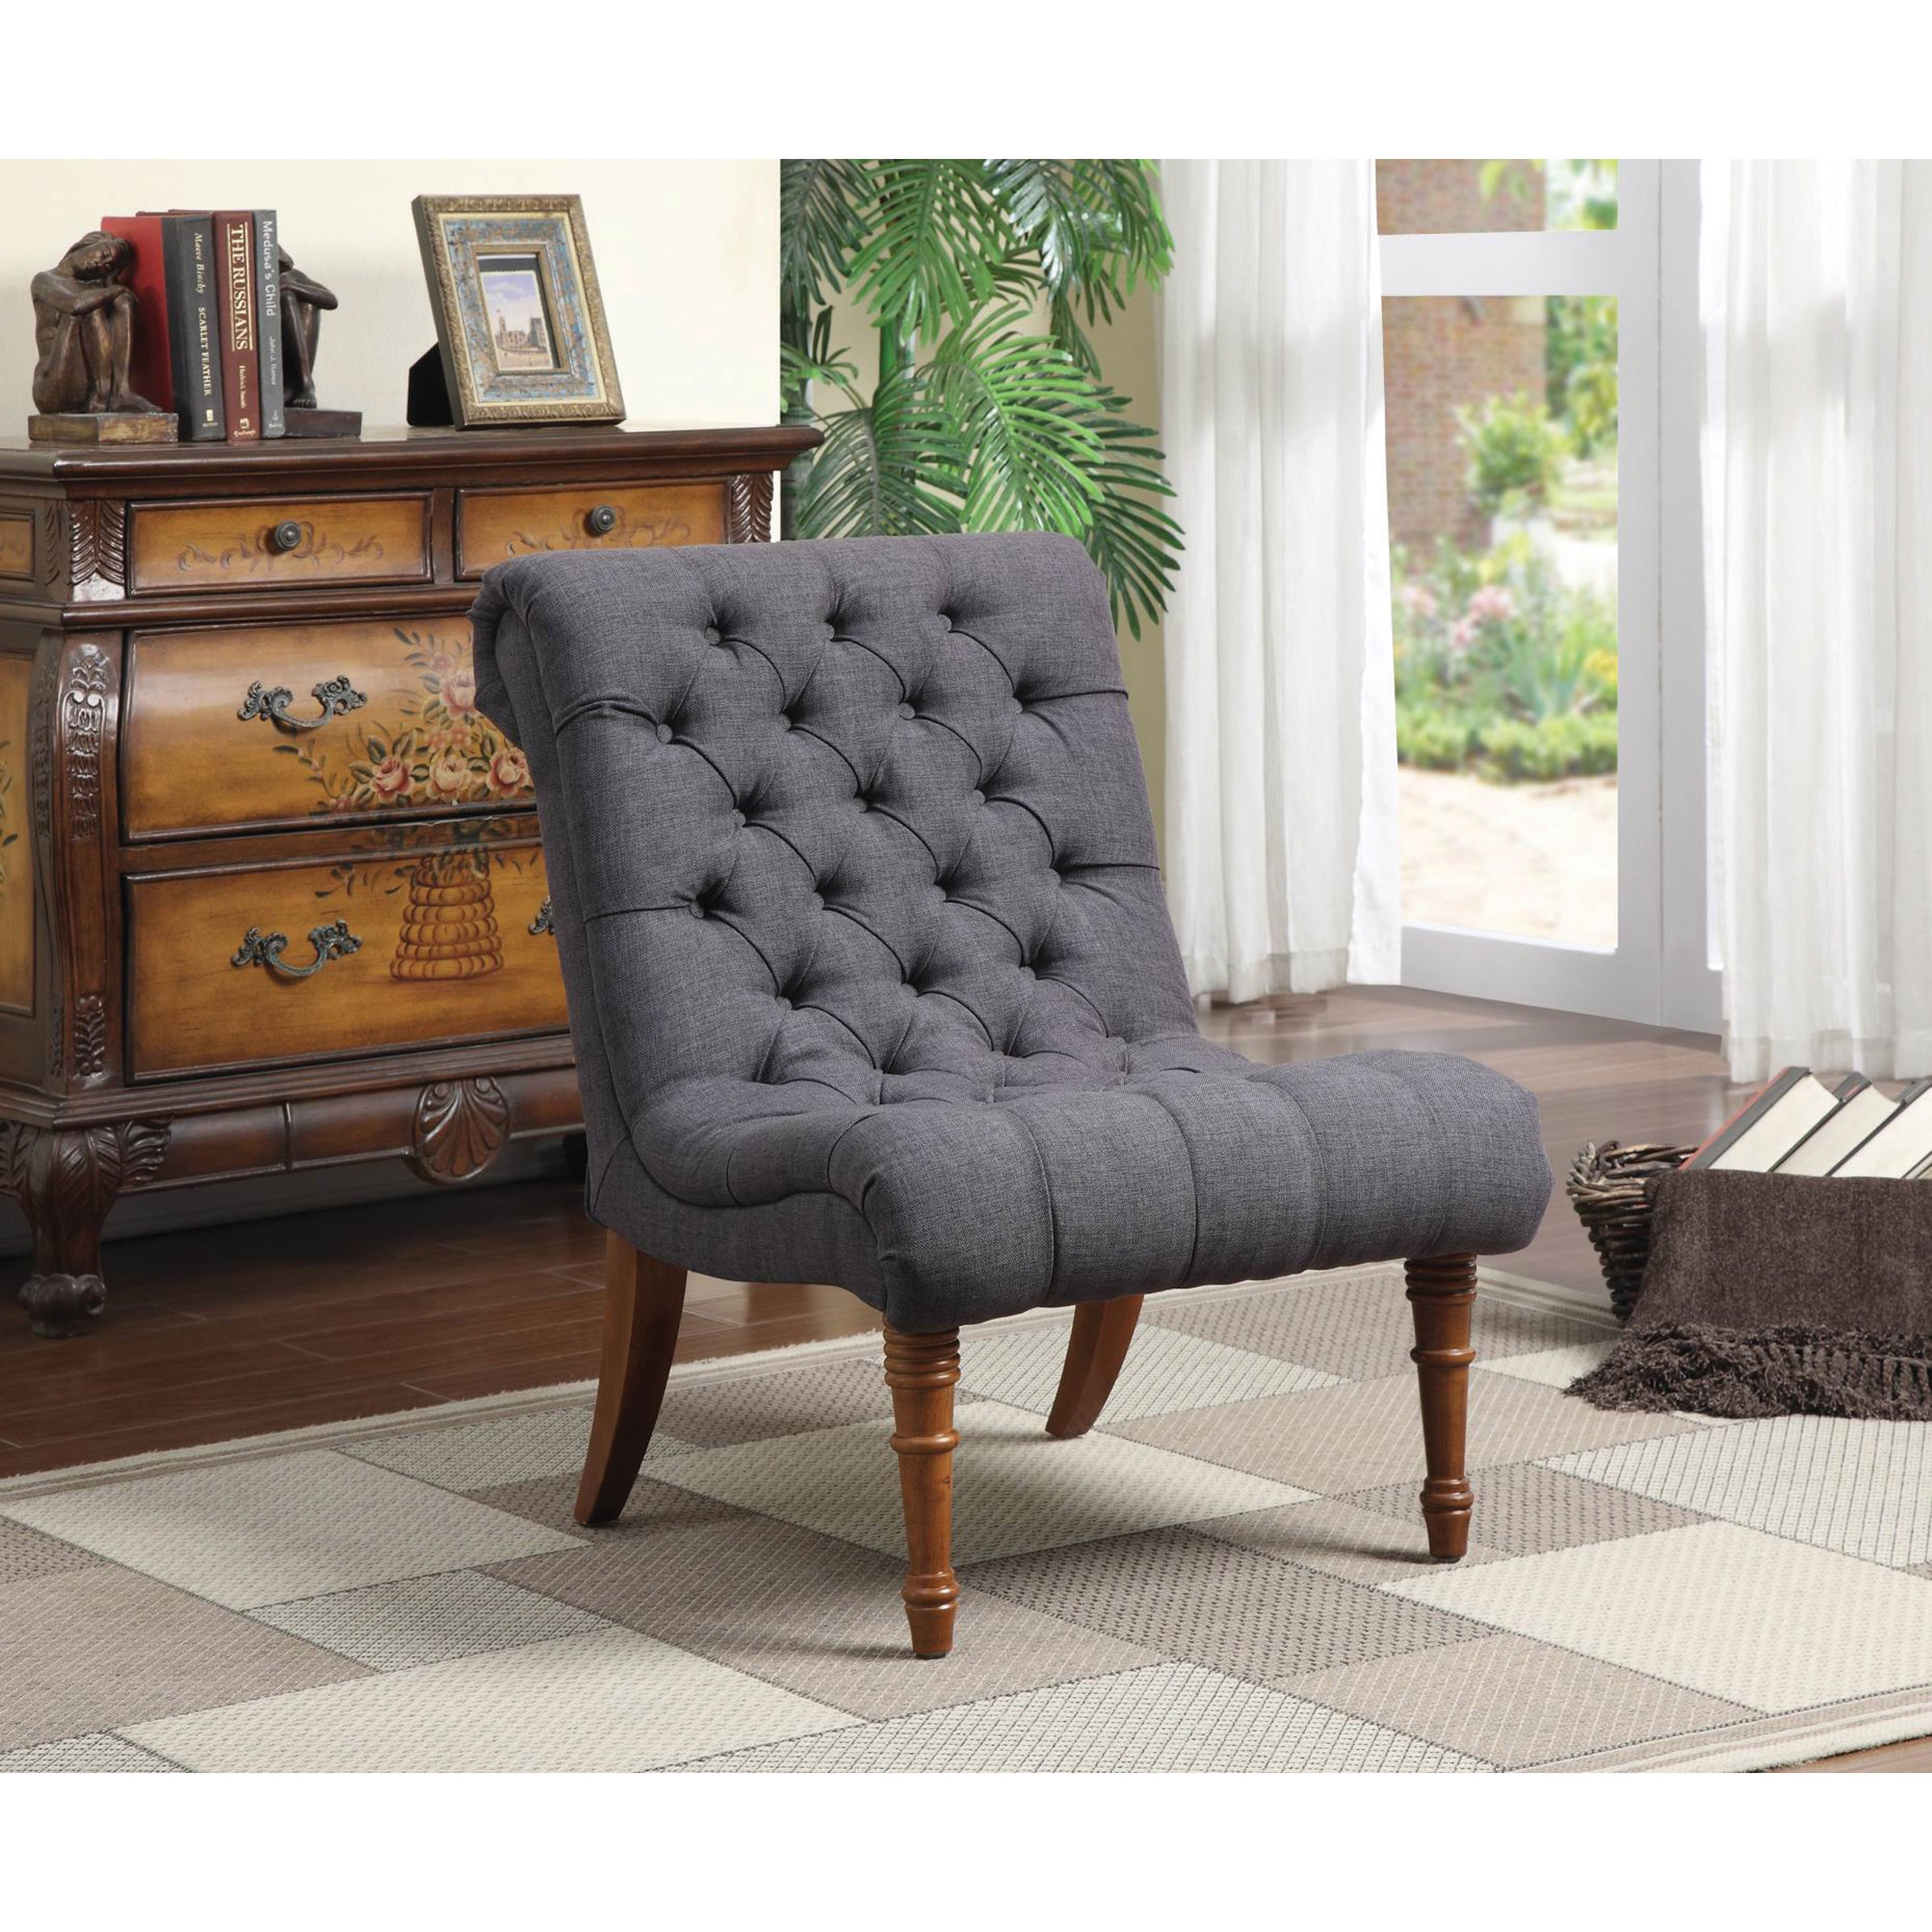 Coaster Company Tufted Woven Armless Accent Chair (Grey) | eBay